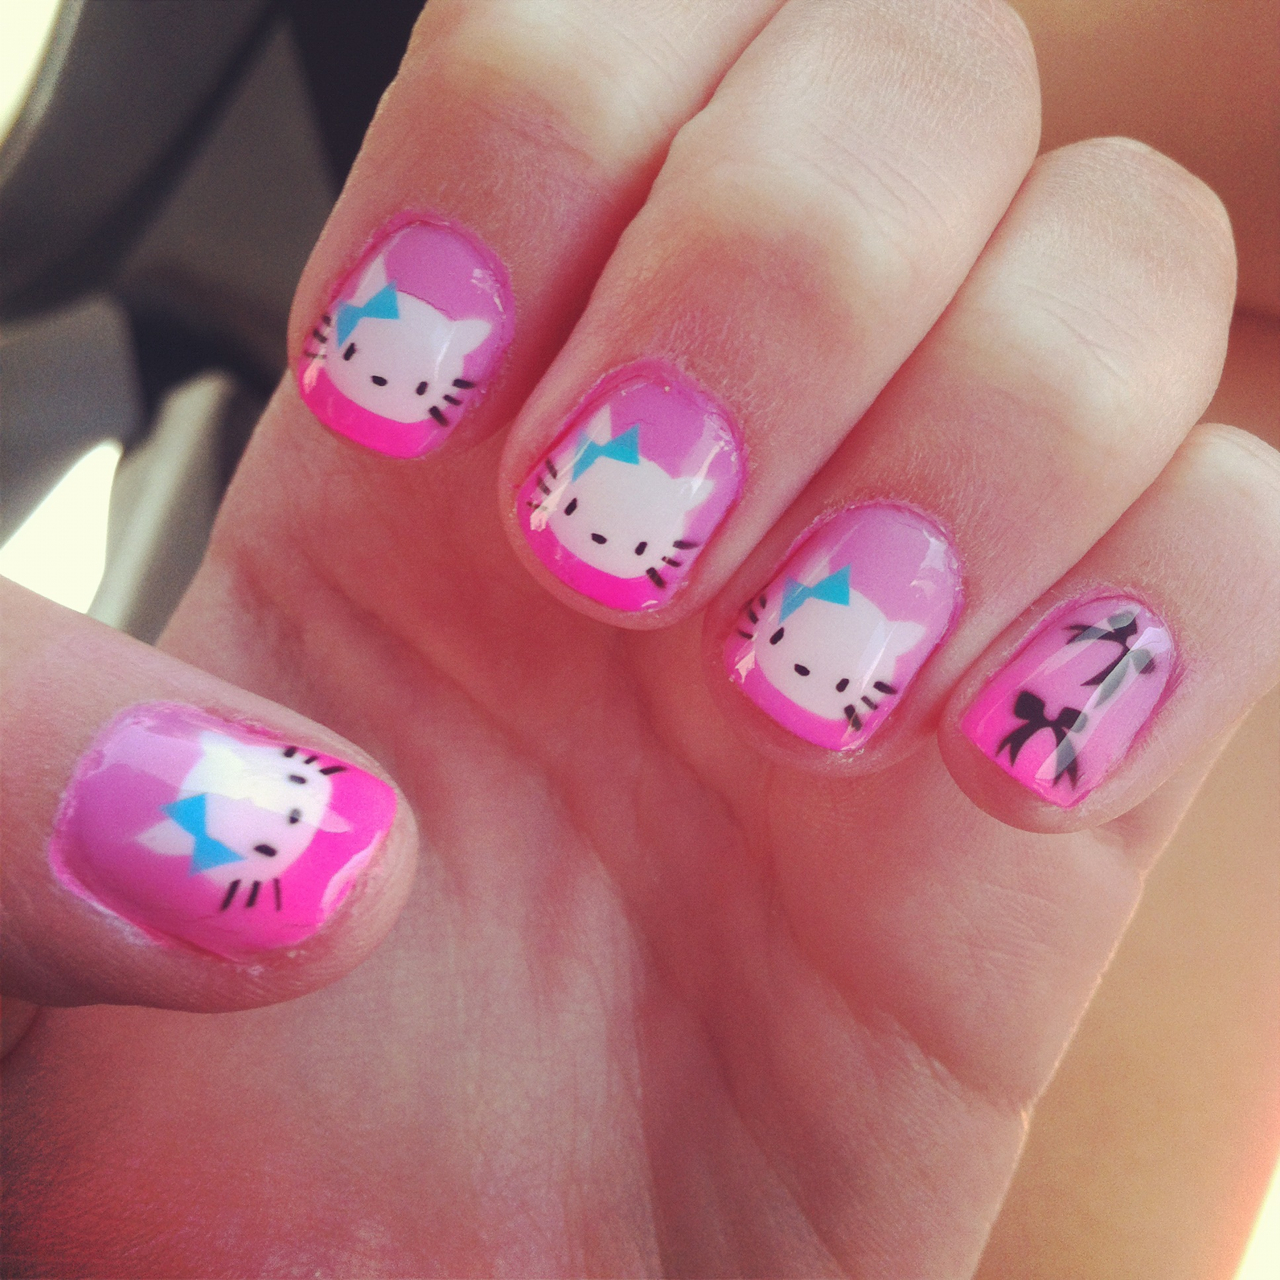 Cute girly nail designs graham reid 2013 cute cat acrylic nails best prinsesfo Choice Image